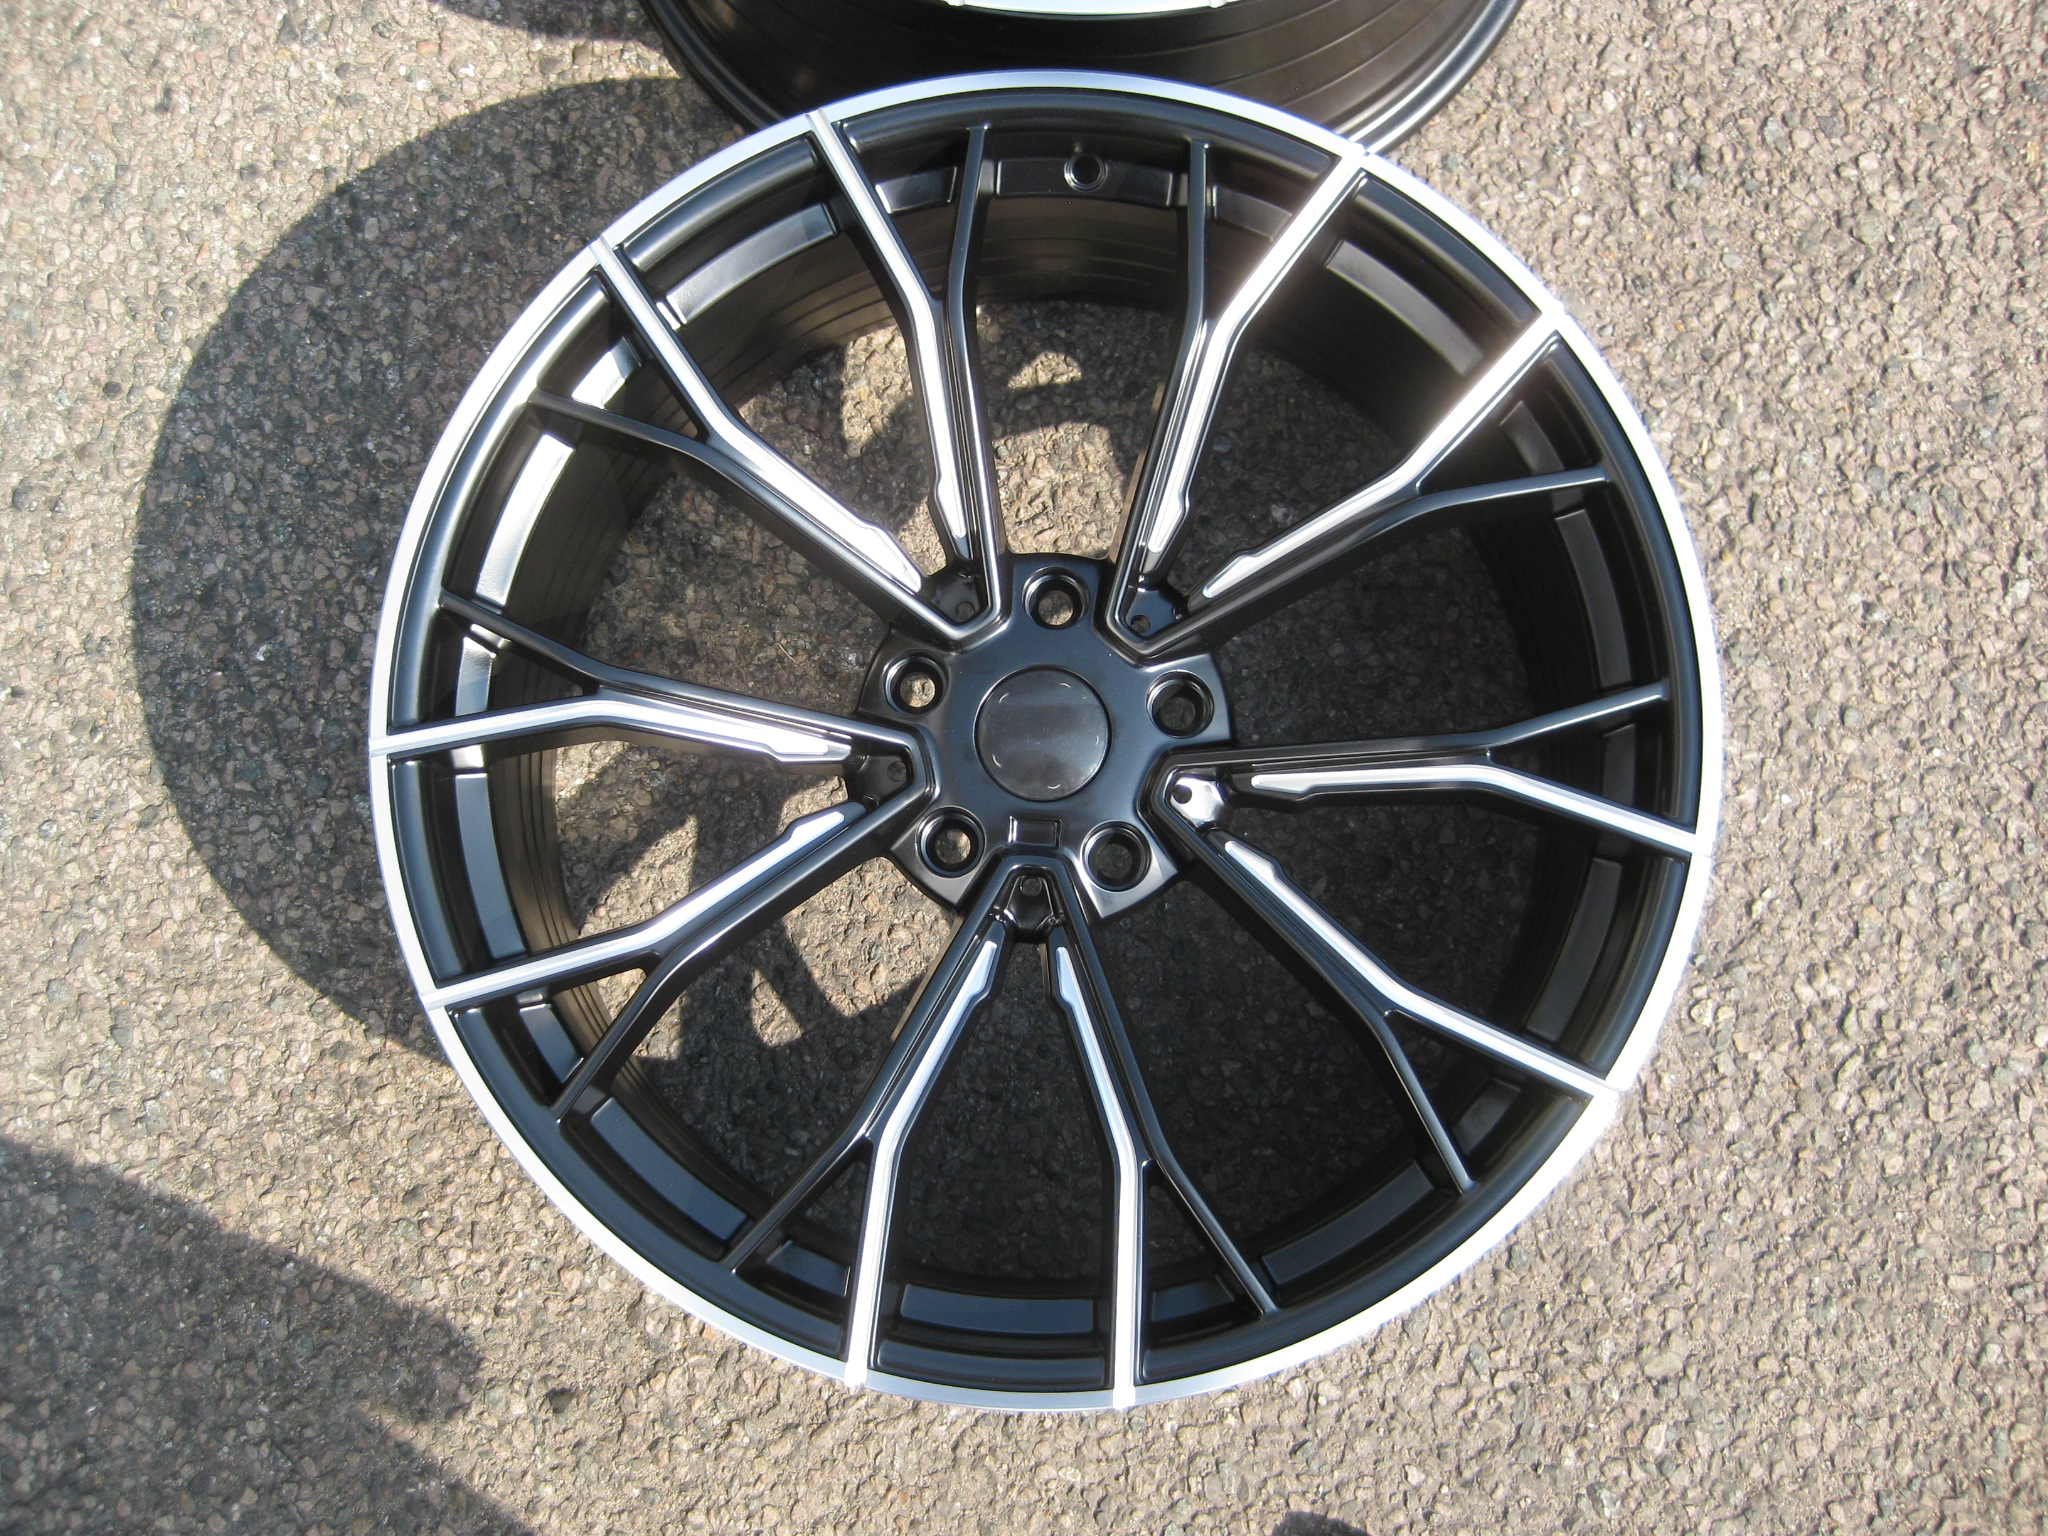 "NEW 20"" AG MG30P FLOW FORMED ALLOY WHEELS IN SATIN BLACK WITH MILLED SPOKES, DEEPER CONCAVE 10.5"" REAR"